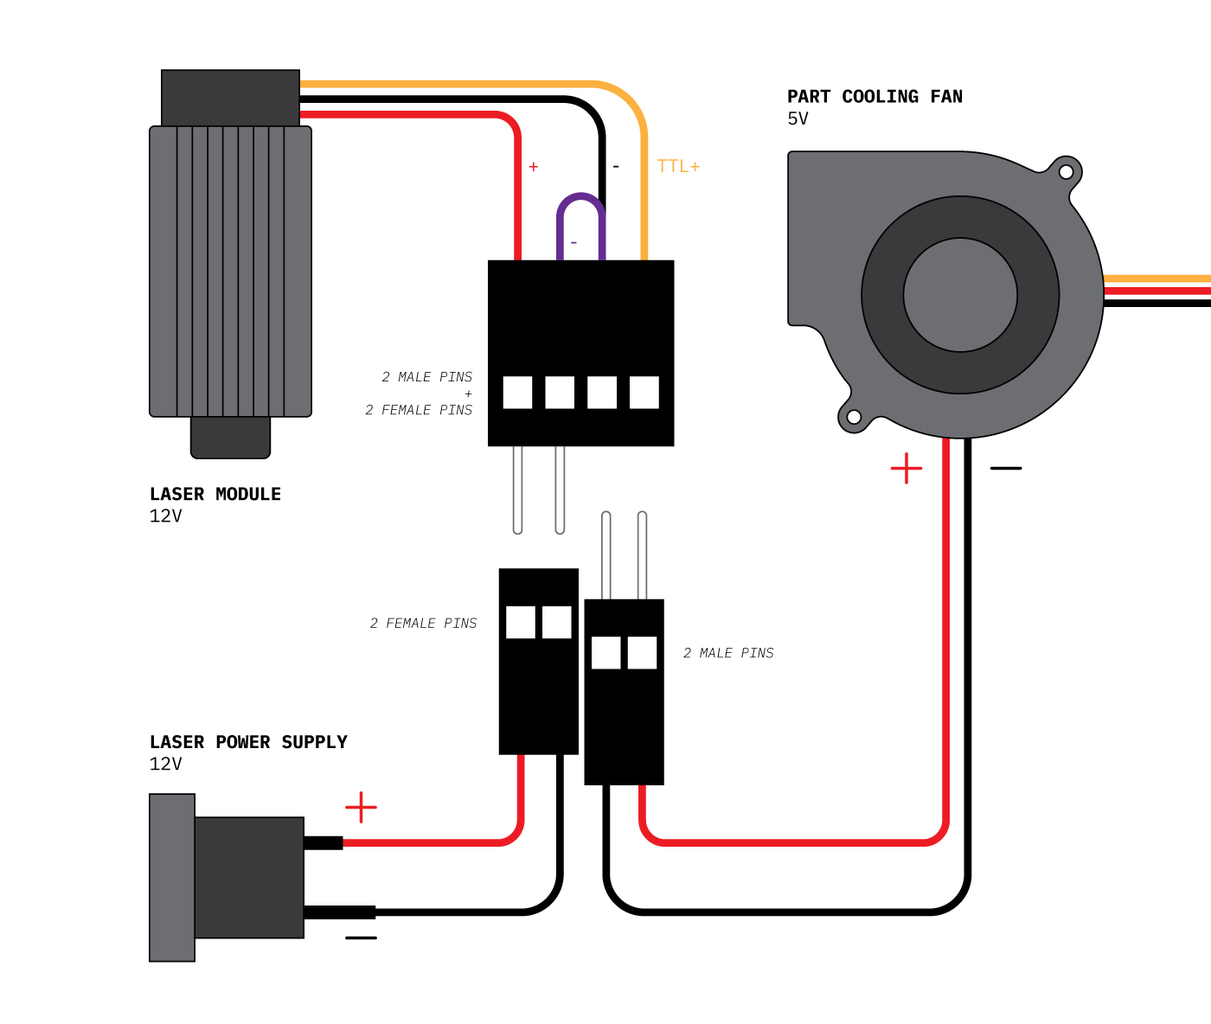 Making the Connections Between Fan, Power Supply and Laser Module